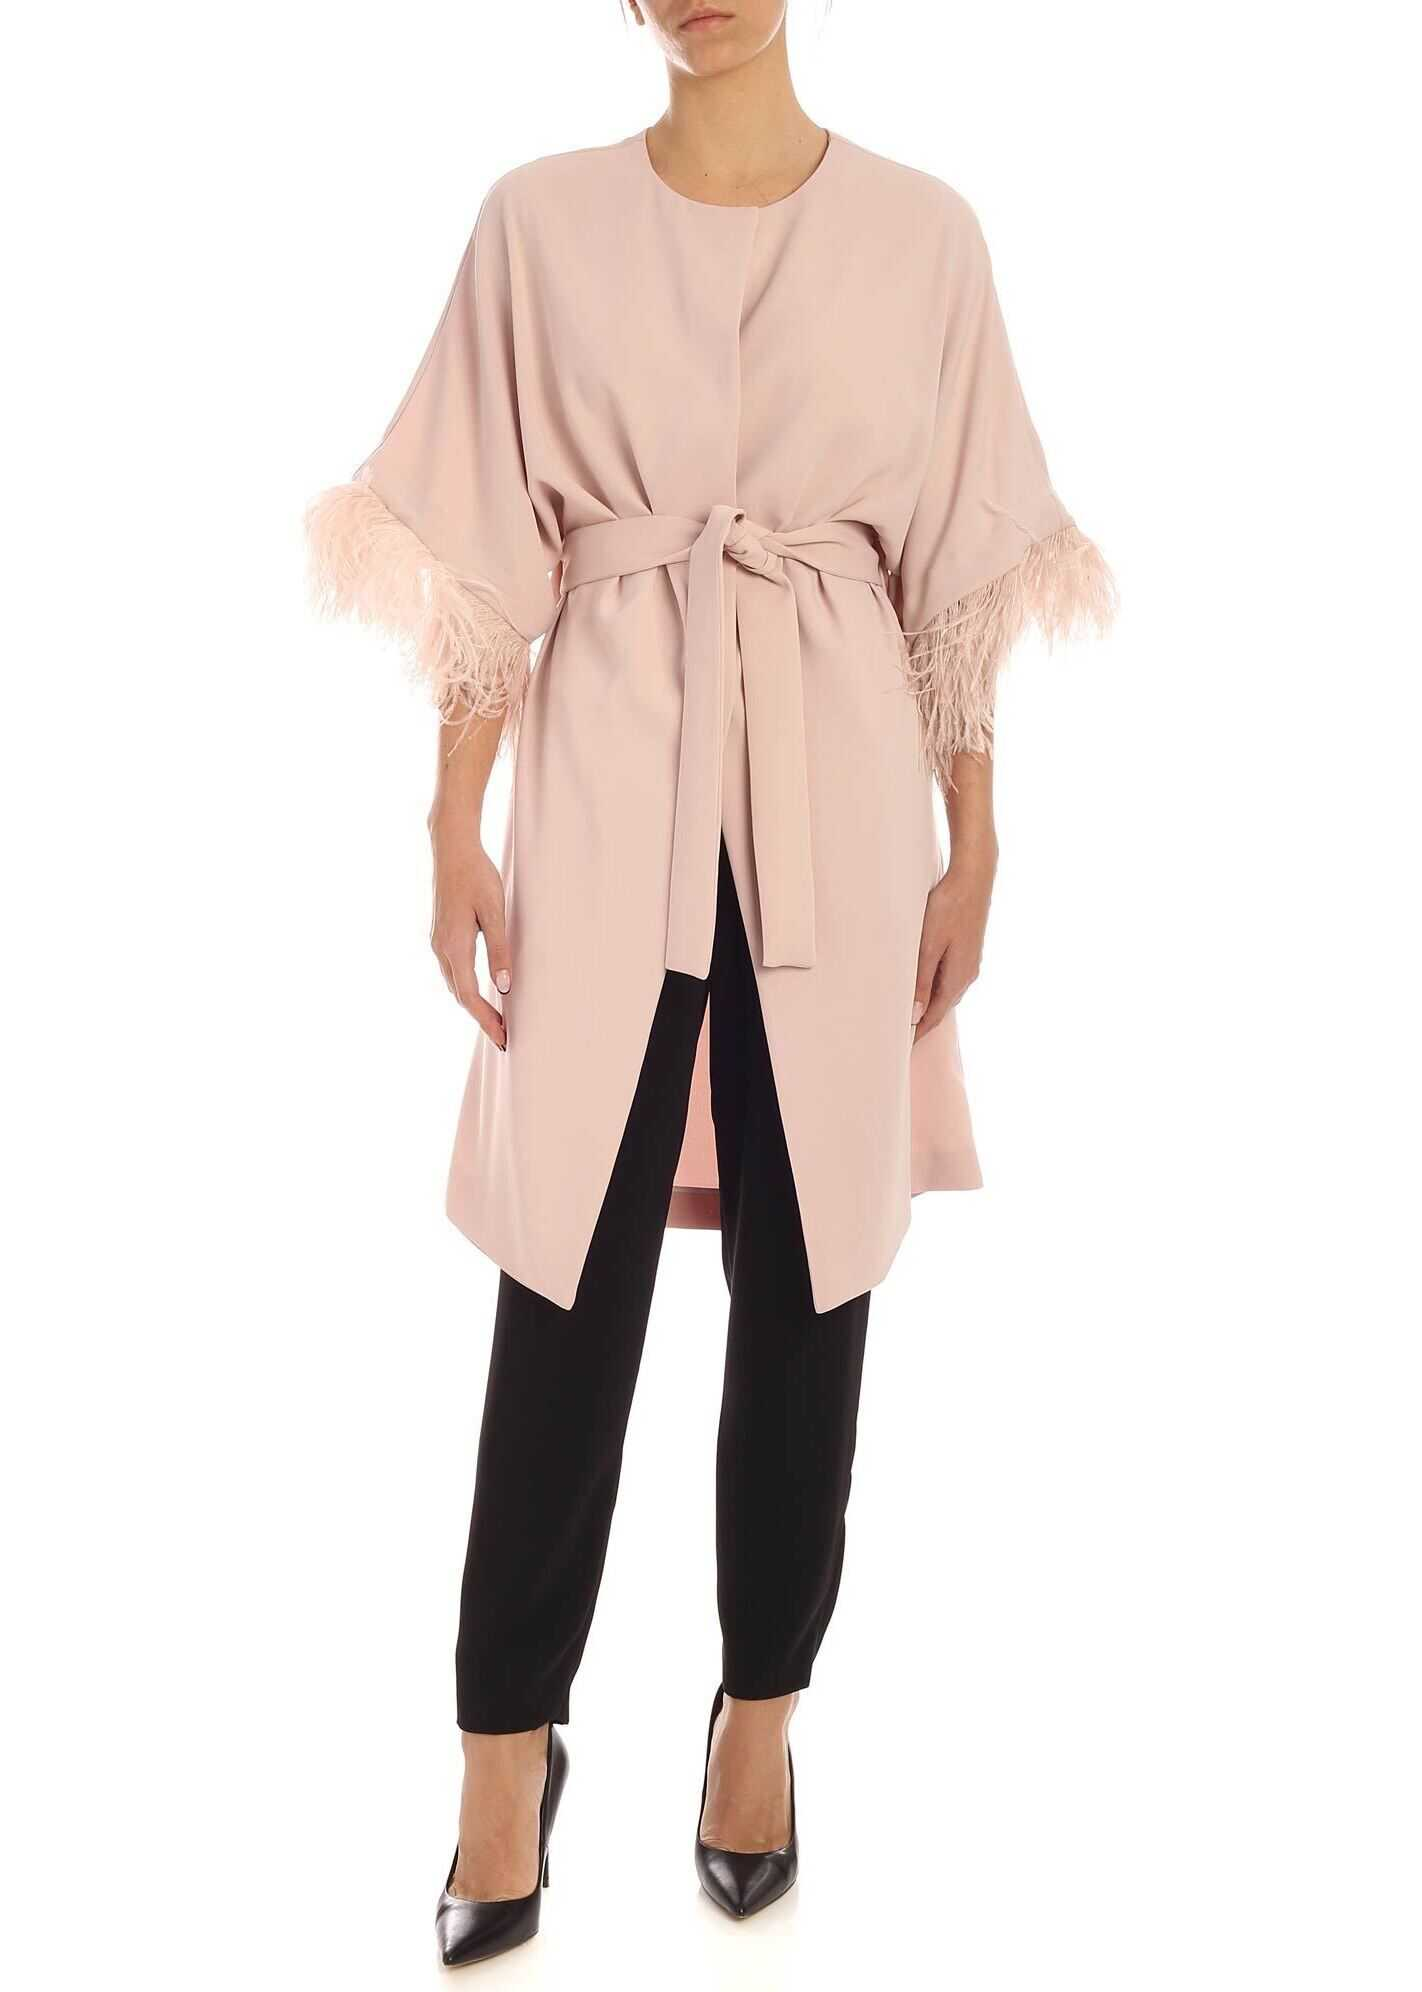 Ostrich Feathers Overcoat In Pink thumbnail